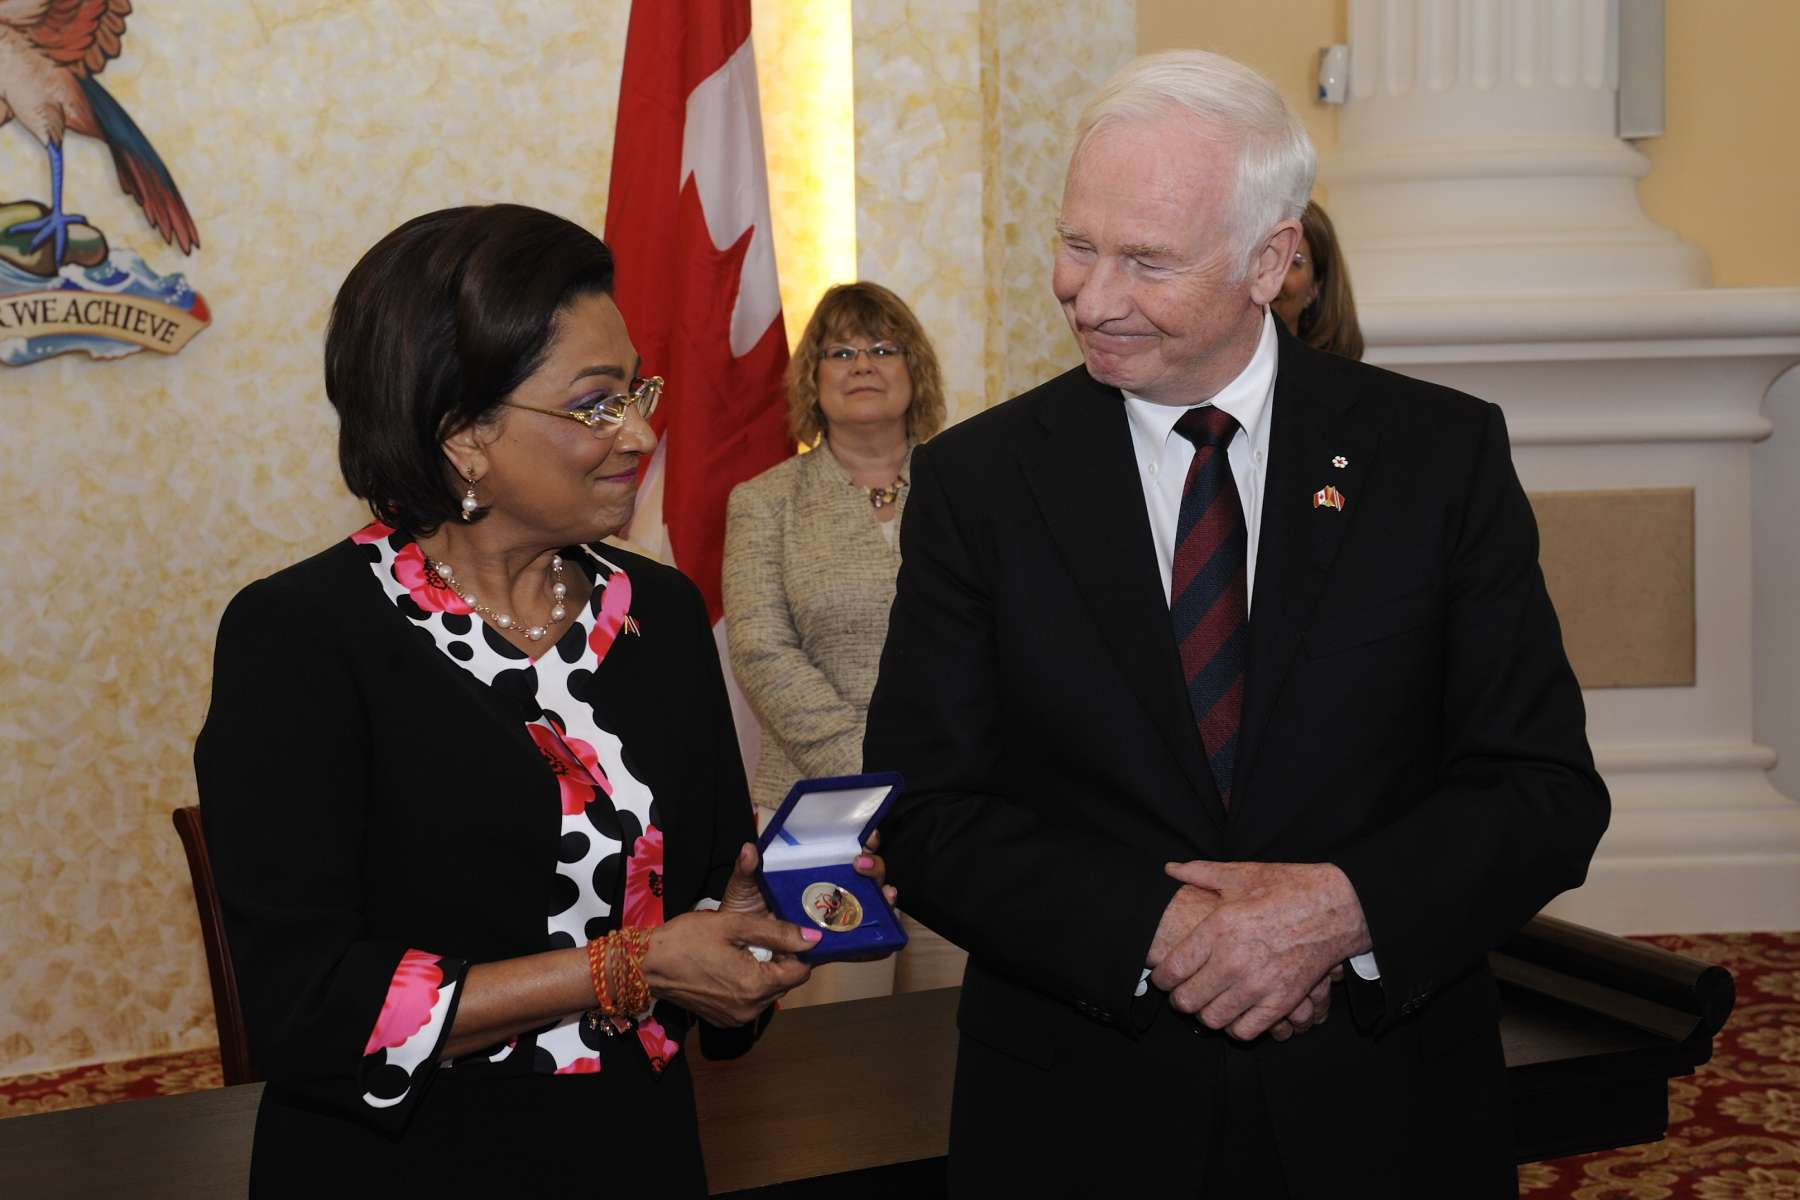 The Governor General presented the Honourable Kamla Persad-Bissessar, Prime Minister of the Republic of Trinidad and Tobago, with a 50th anniversary commemorative coin.